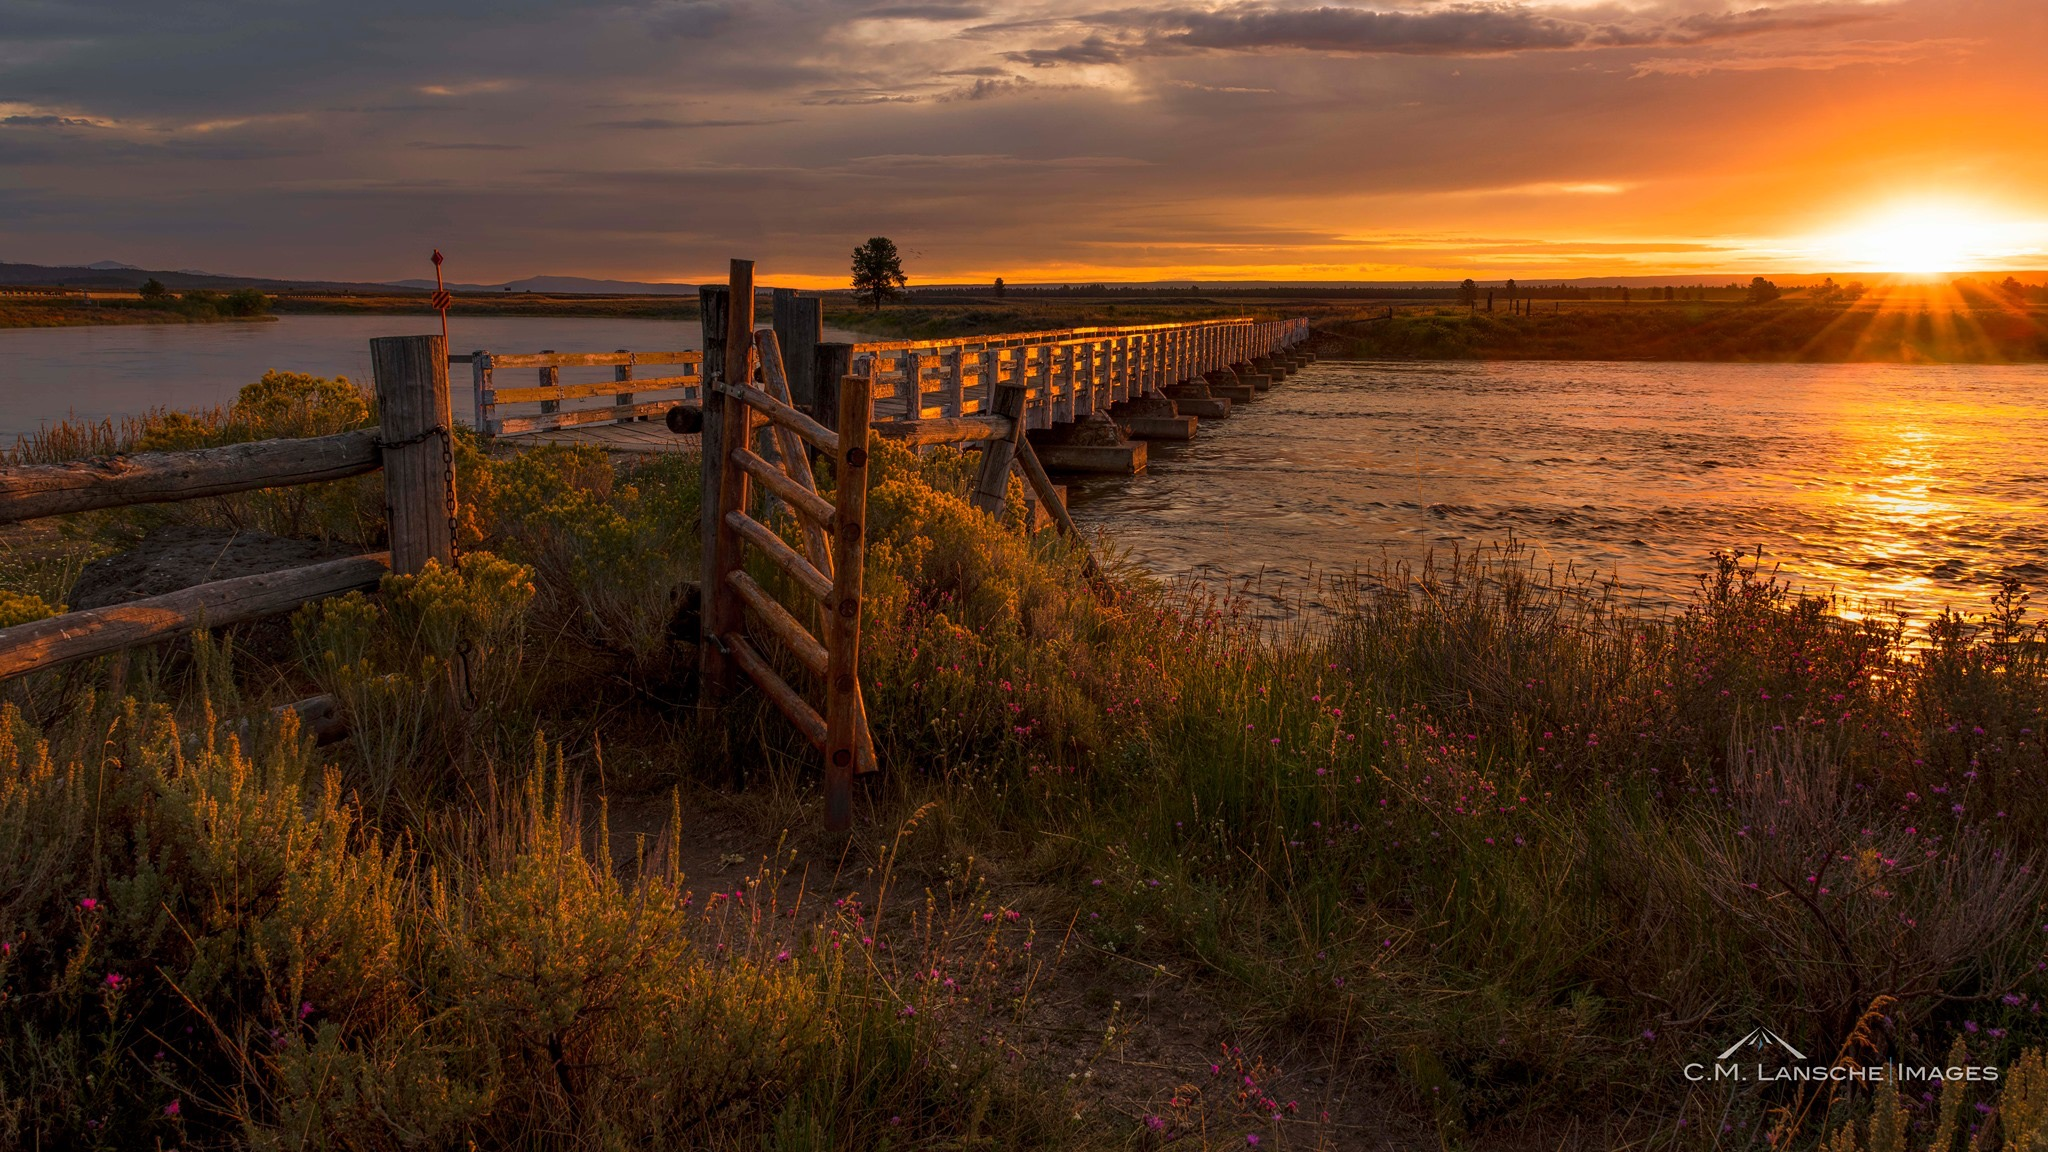 Osborne Sunrise. How many ranchers, fishermen, and passersby have crossed the Henry's Fork via the historic Osborne Bridge? It's a question that I ponder each time I walk through this gate. Island Park, Idaho. August 24, 2019.